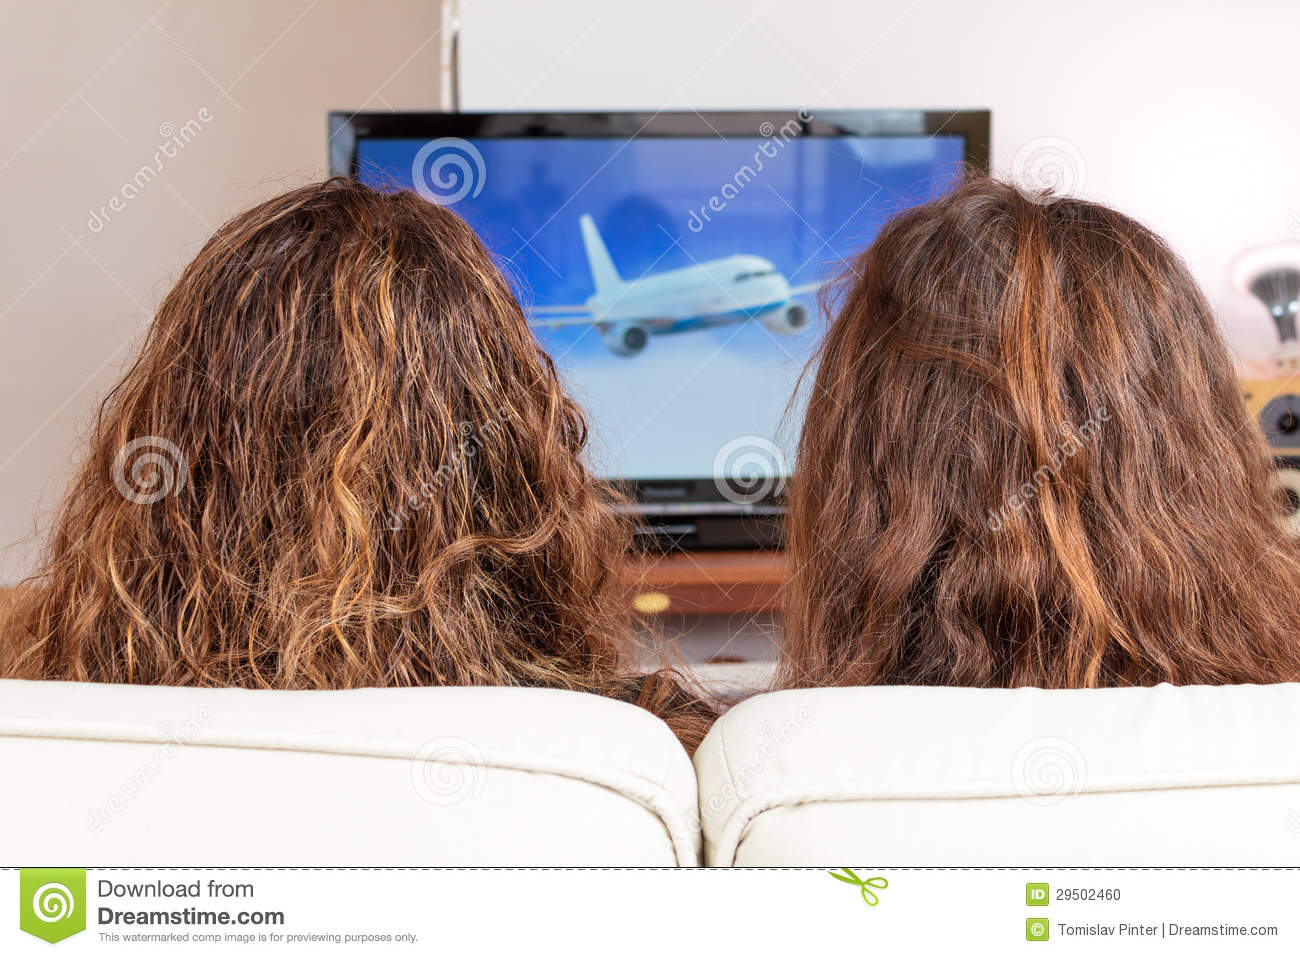 Two friends watching TV